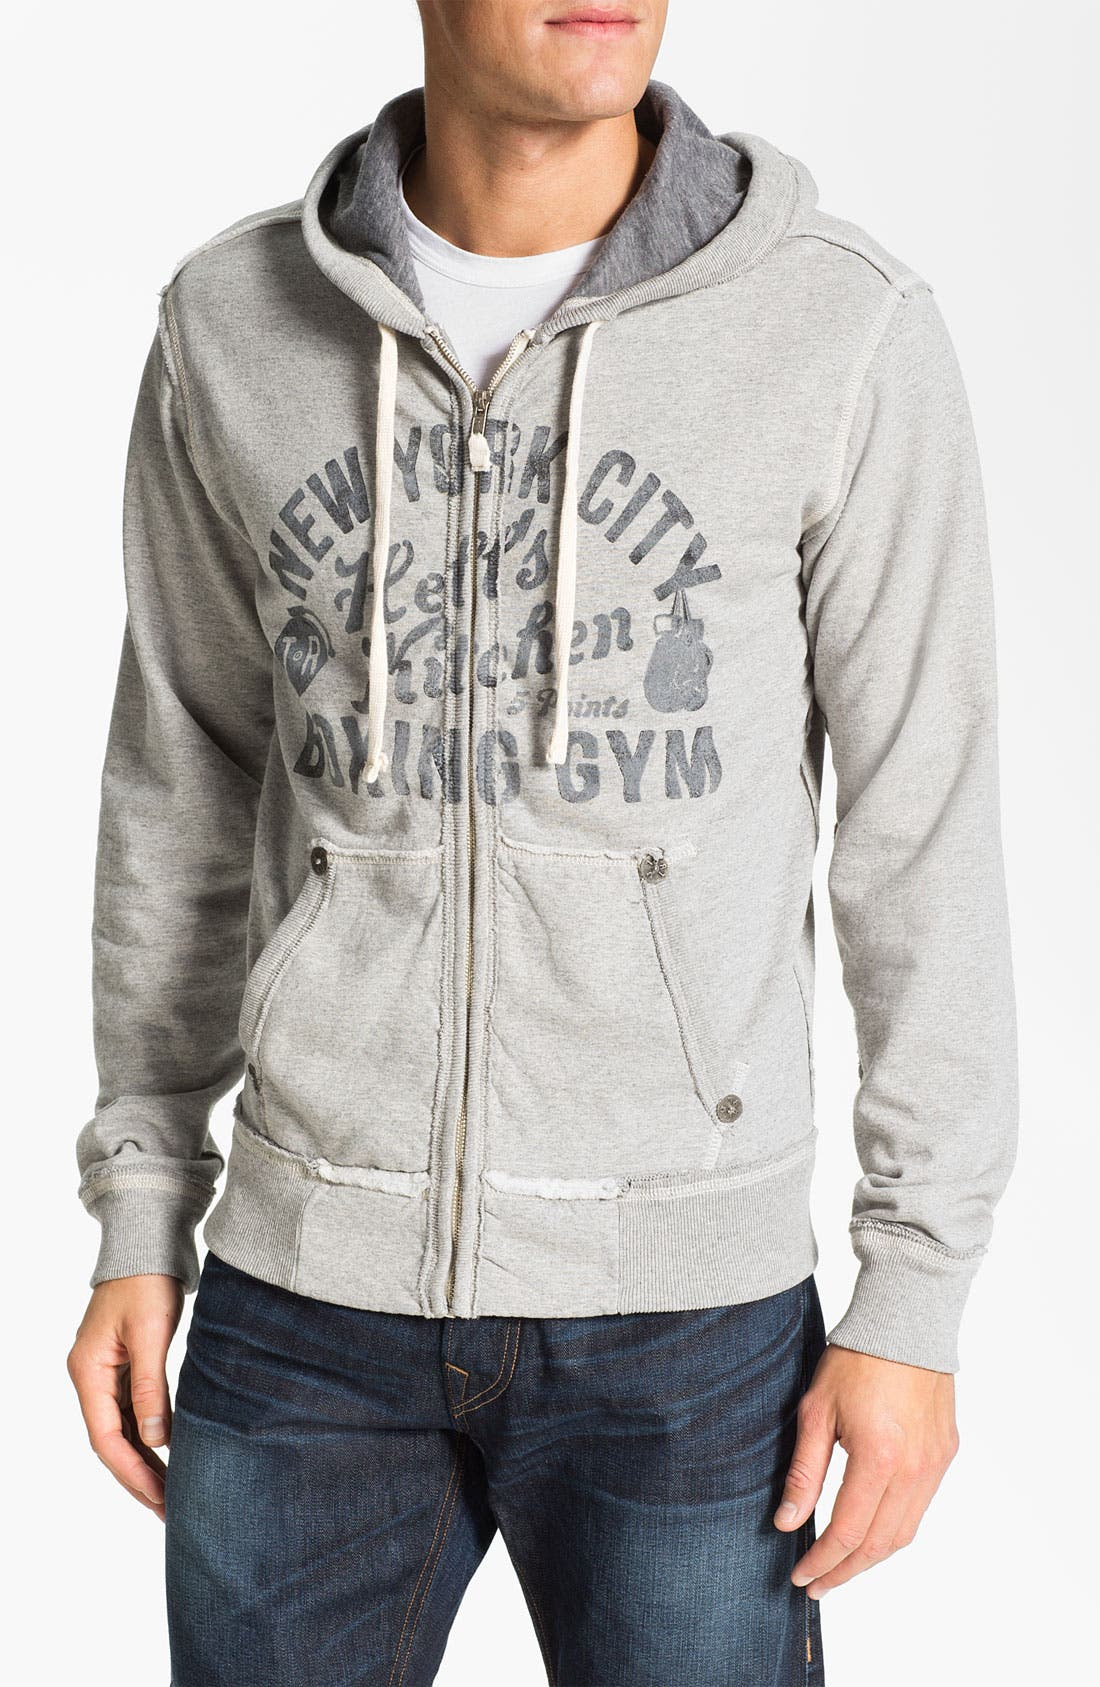 Main Image - True Religion Brand Jeans 'Hell's Kitchen' Graphic Zip Hoodie